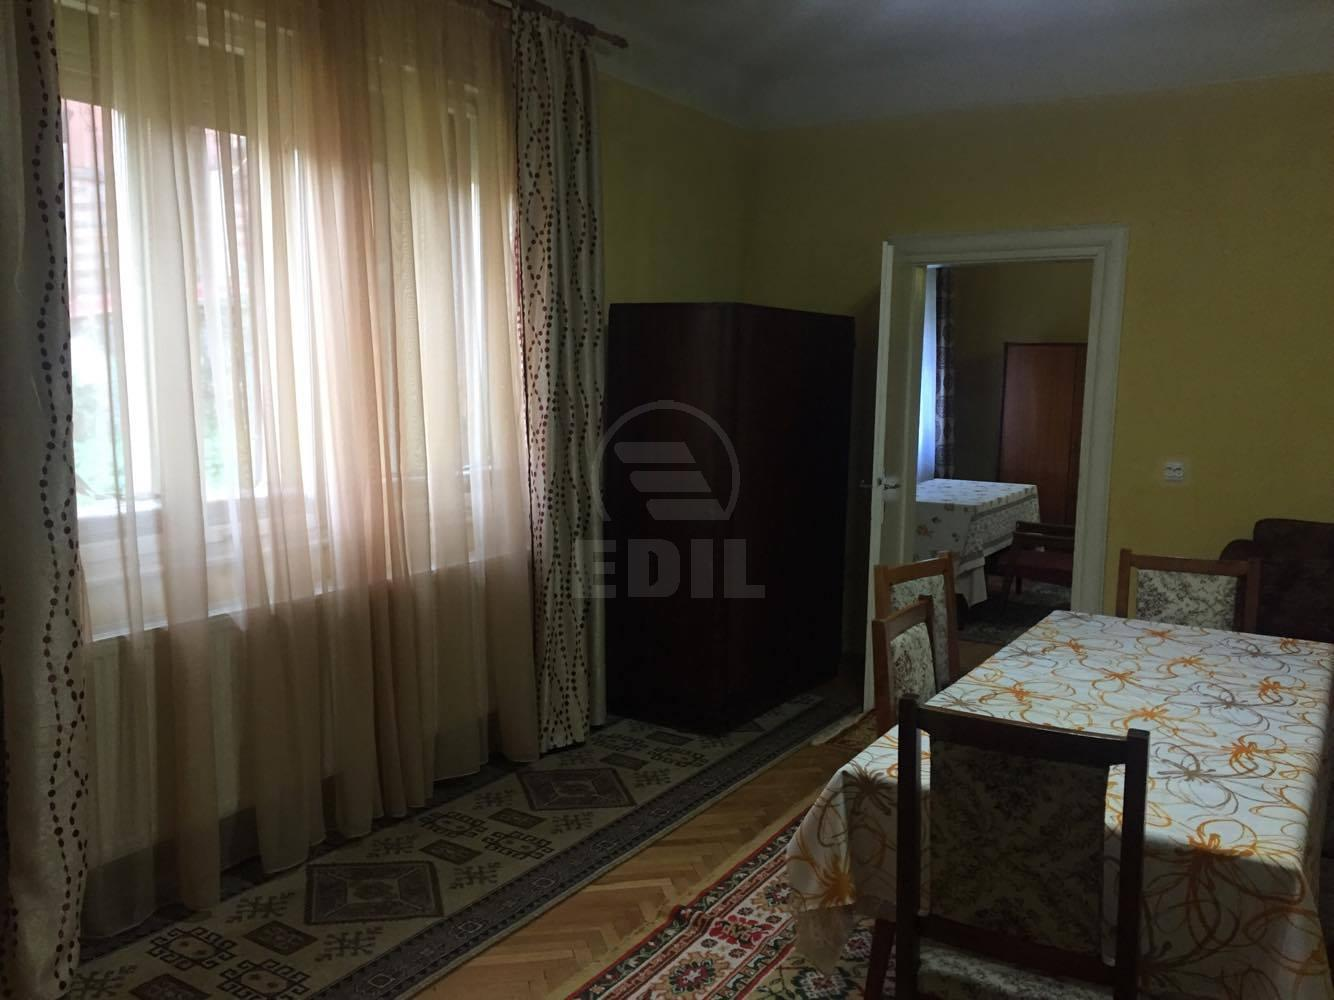 Apartment for rent 3 rooms, APCJ281600-10